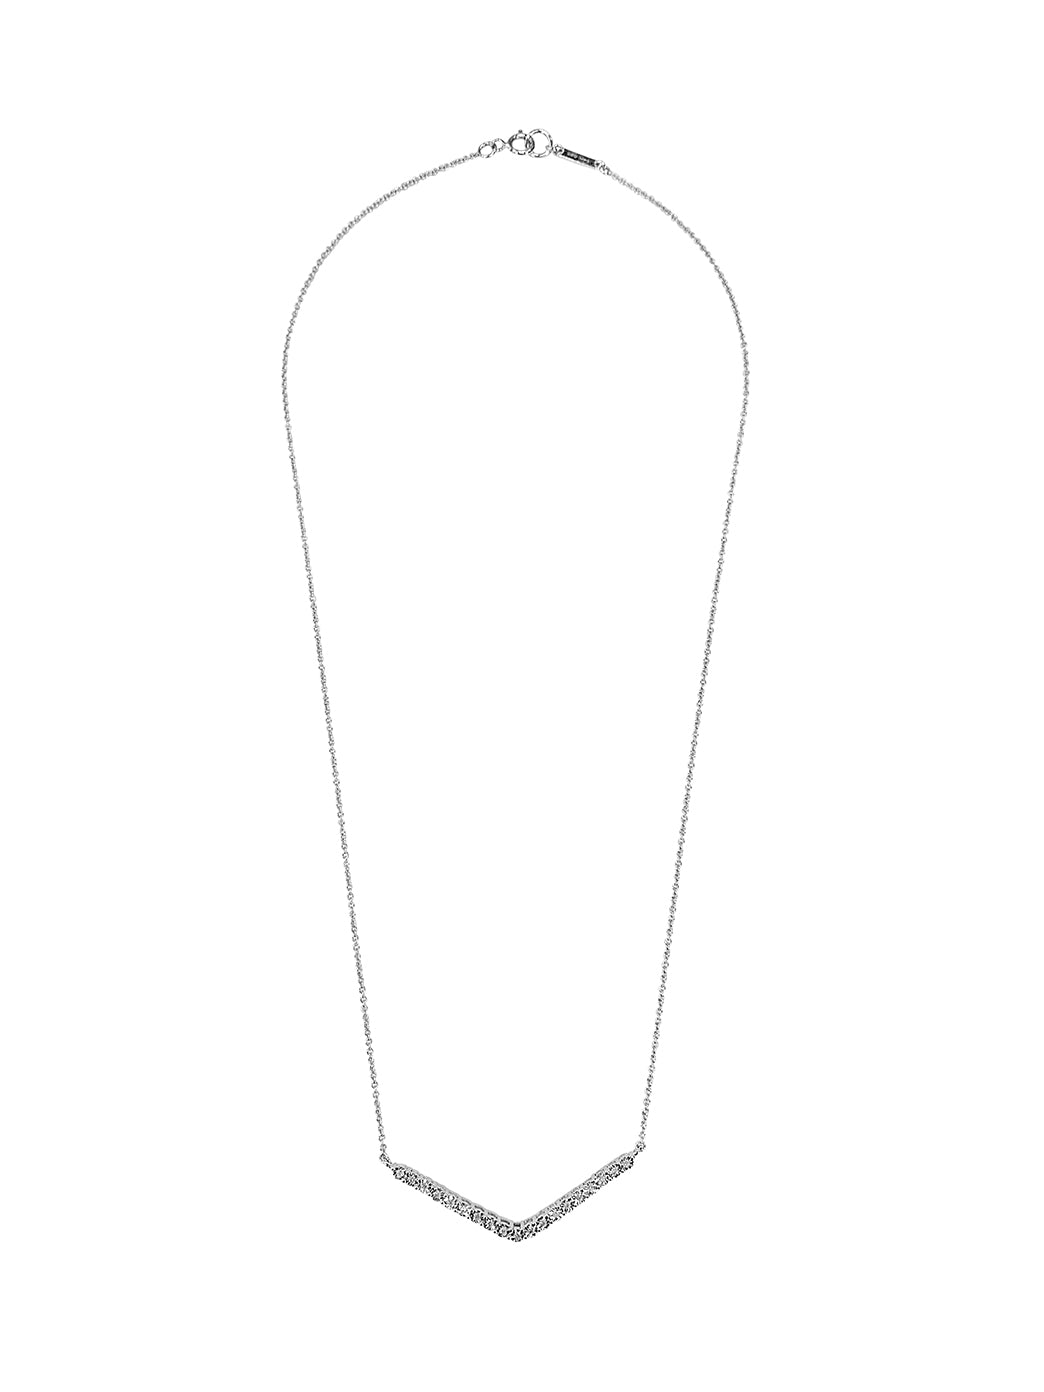 Fiorina Jewellery White Gold Diamond V Necklace